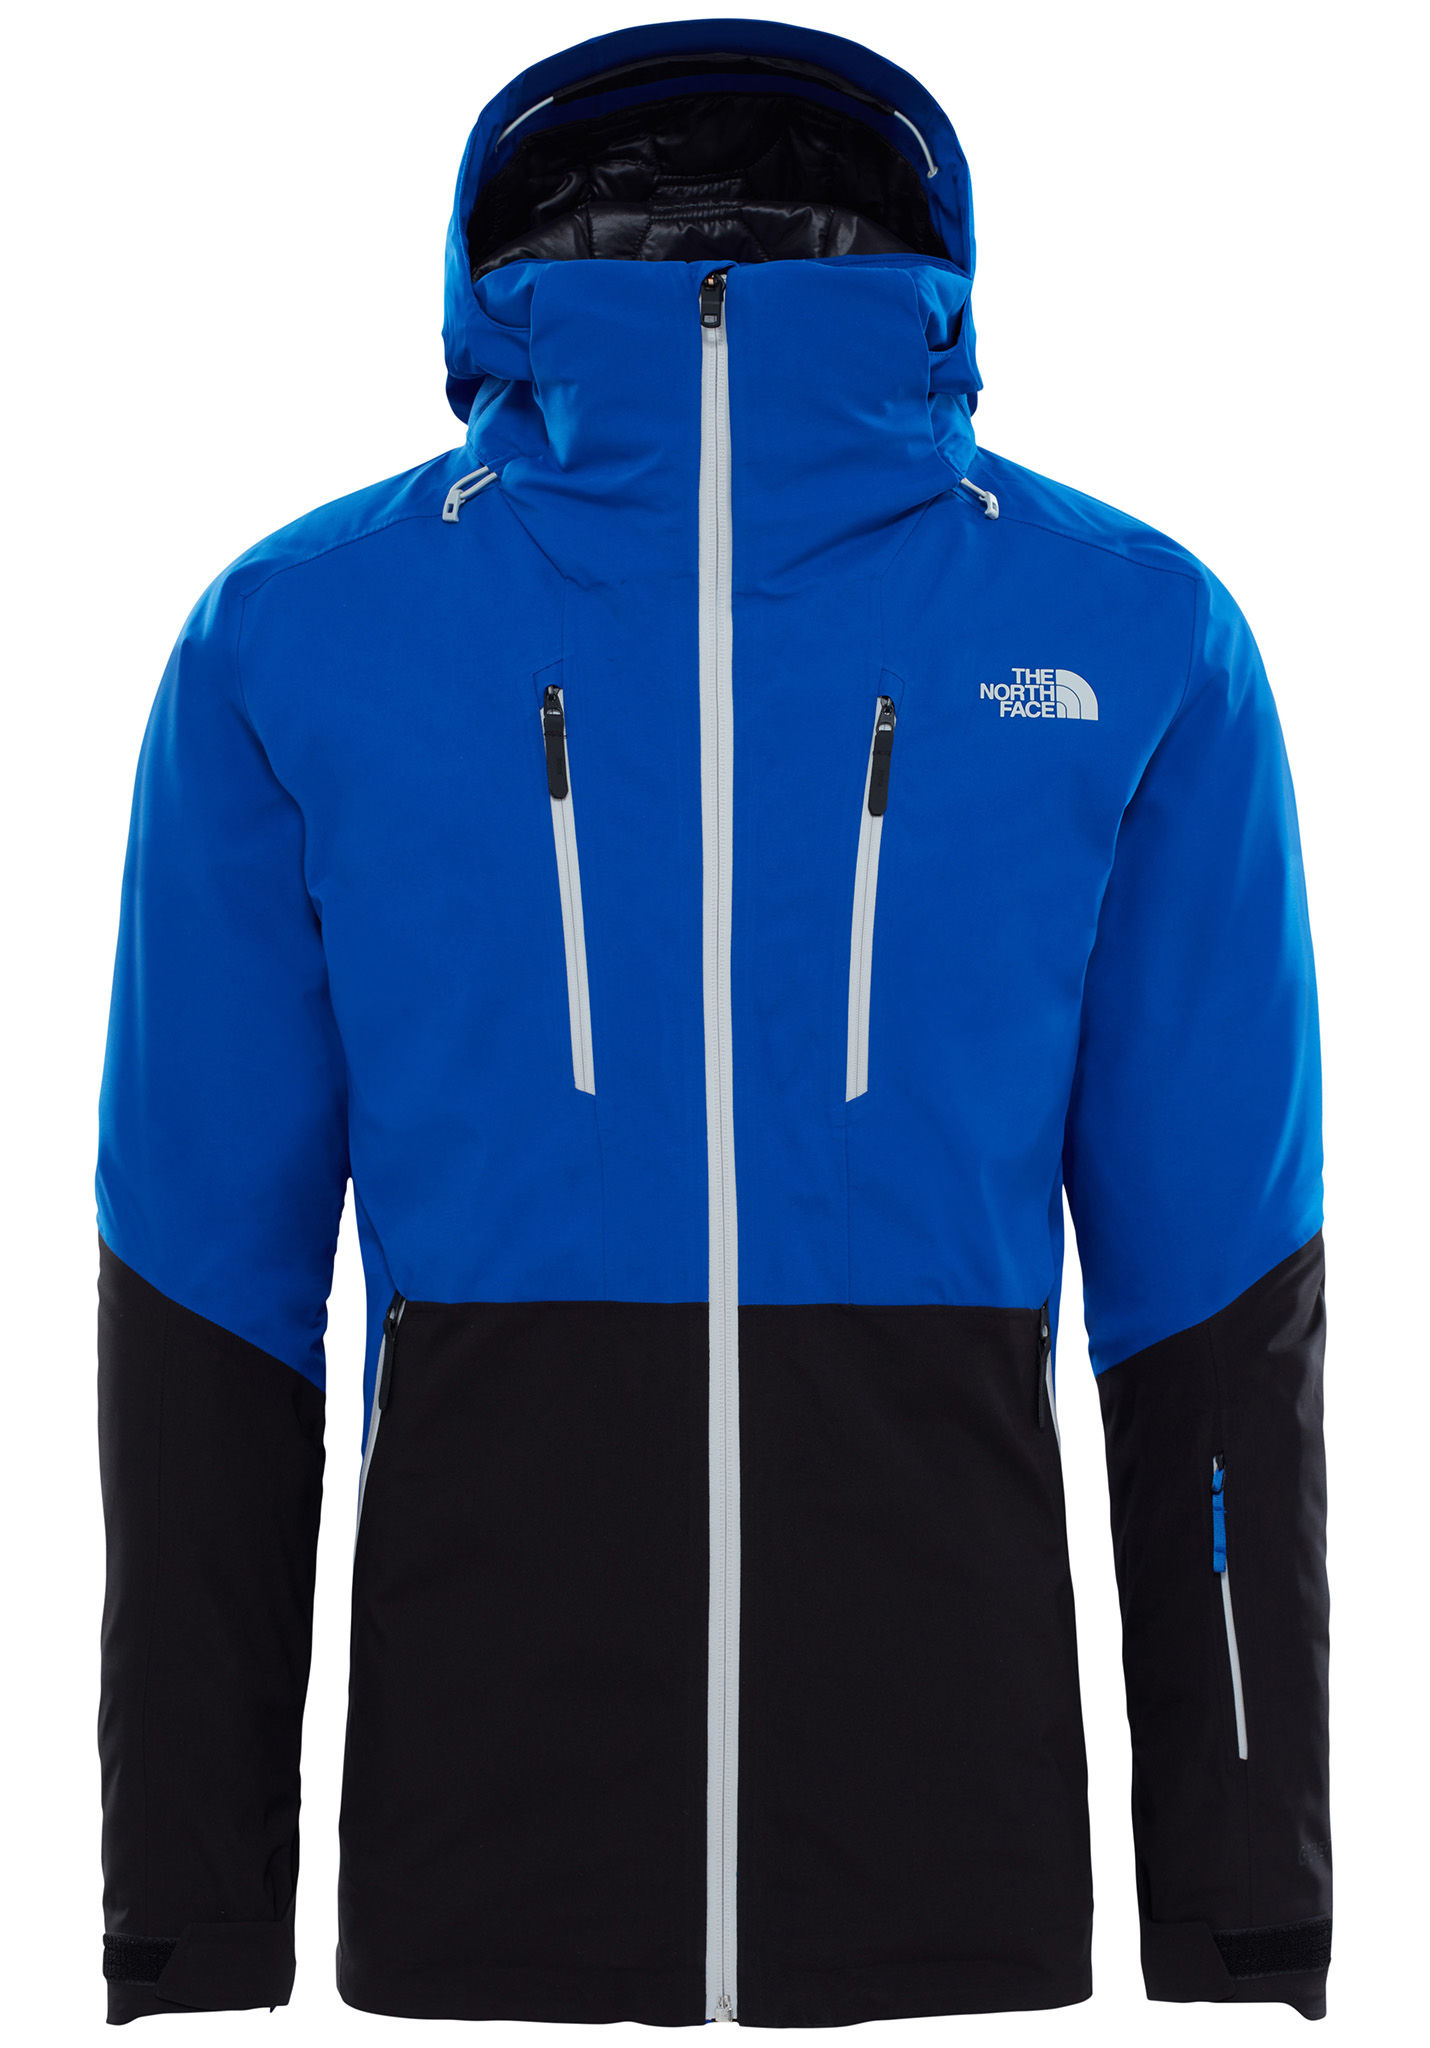 THE NORTH FACE Anonym - Giacca outdoor per Uomo - Blu - Planet Sports 2df36aa102f9